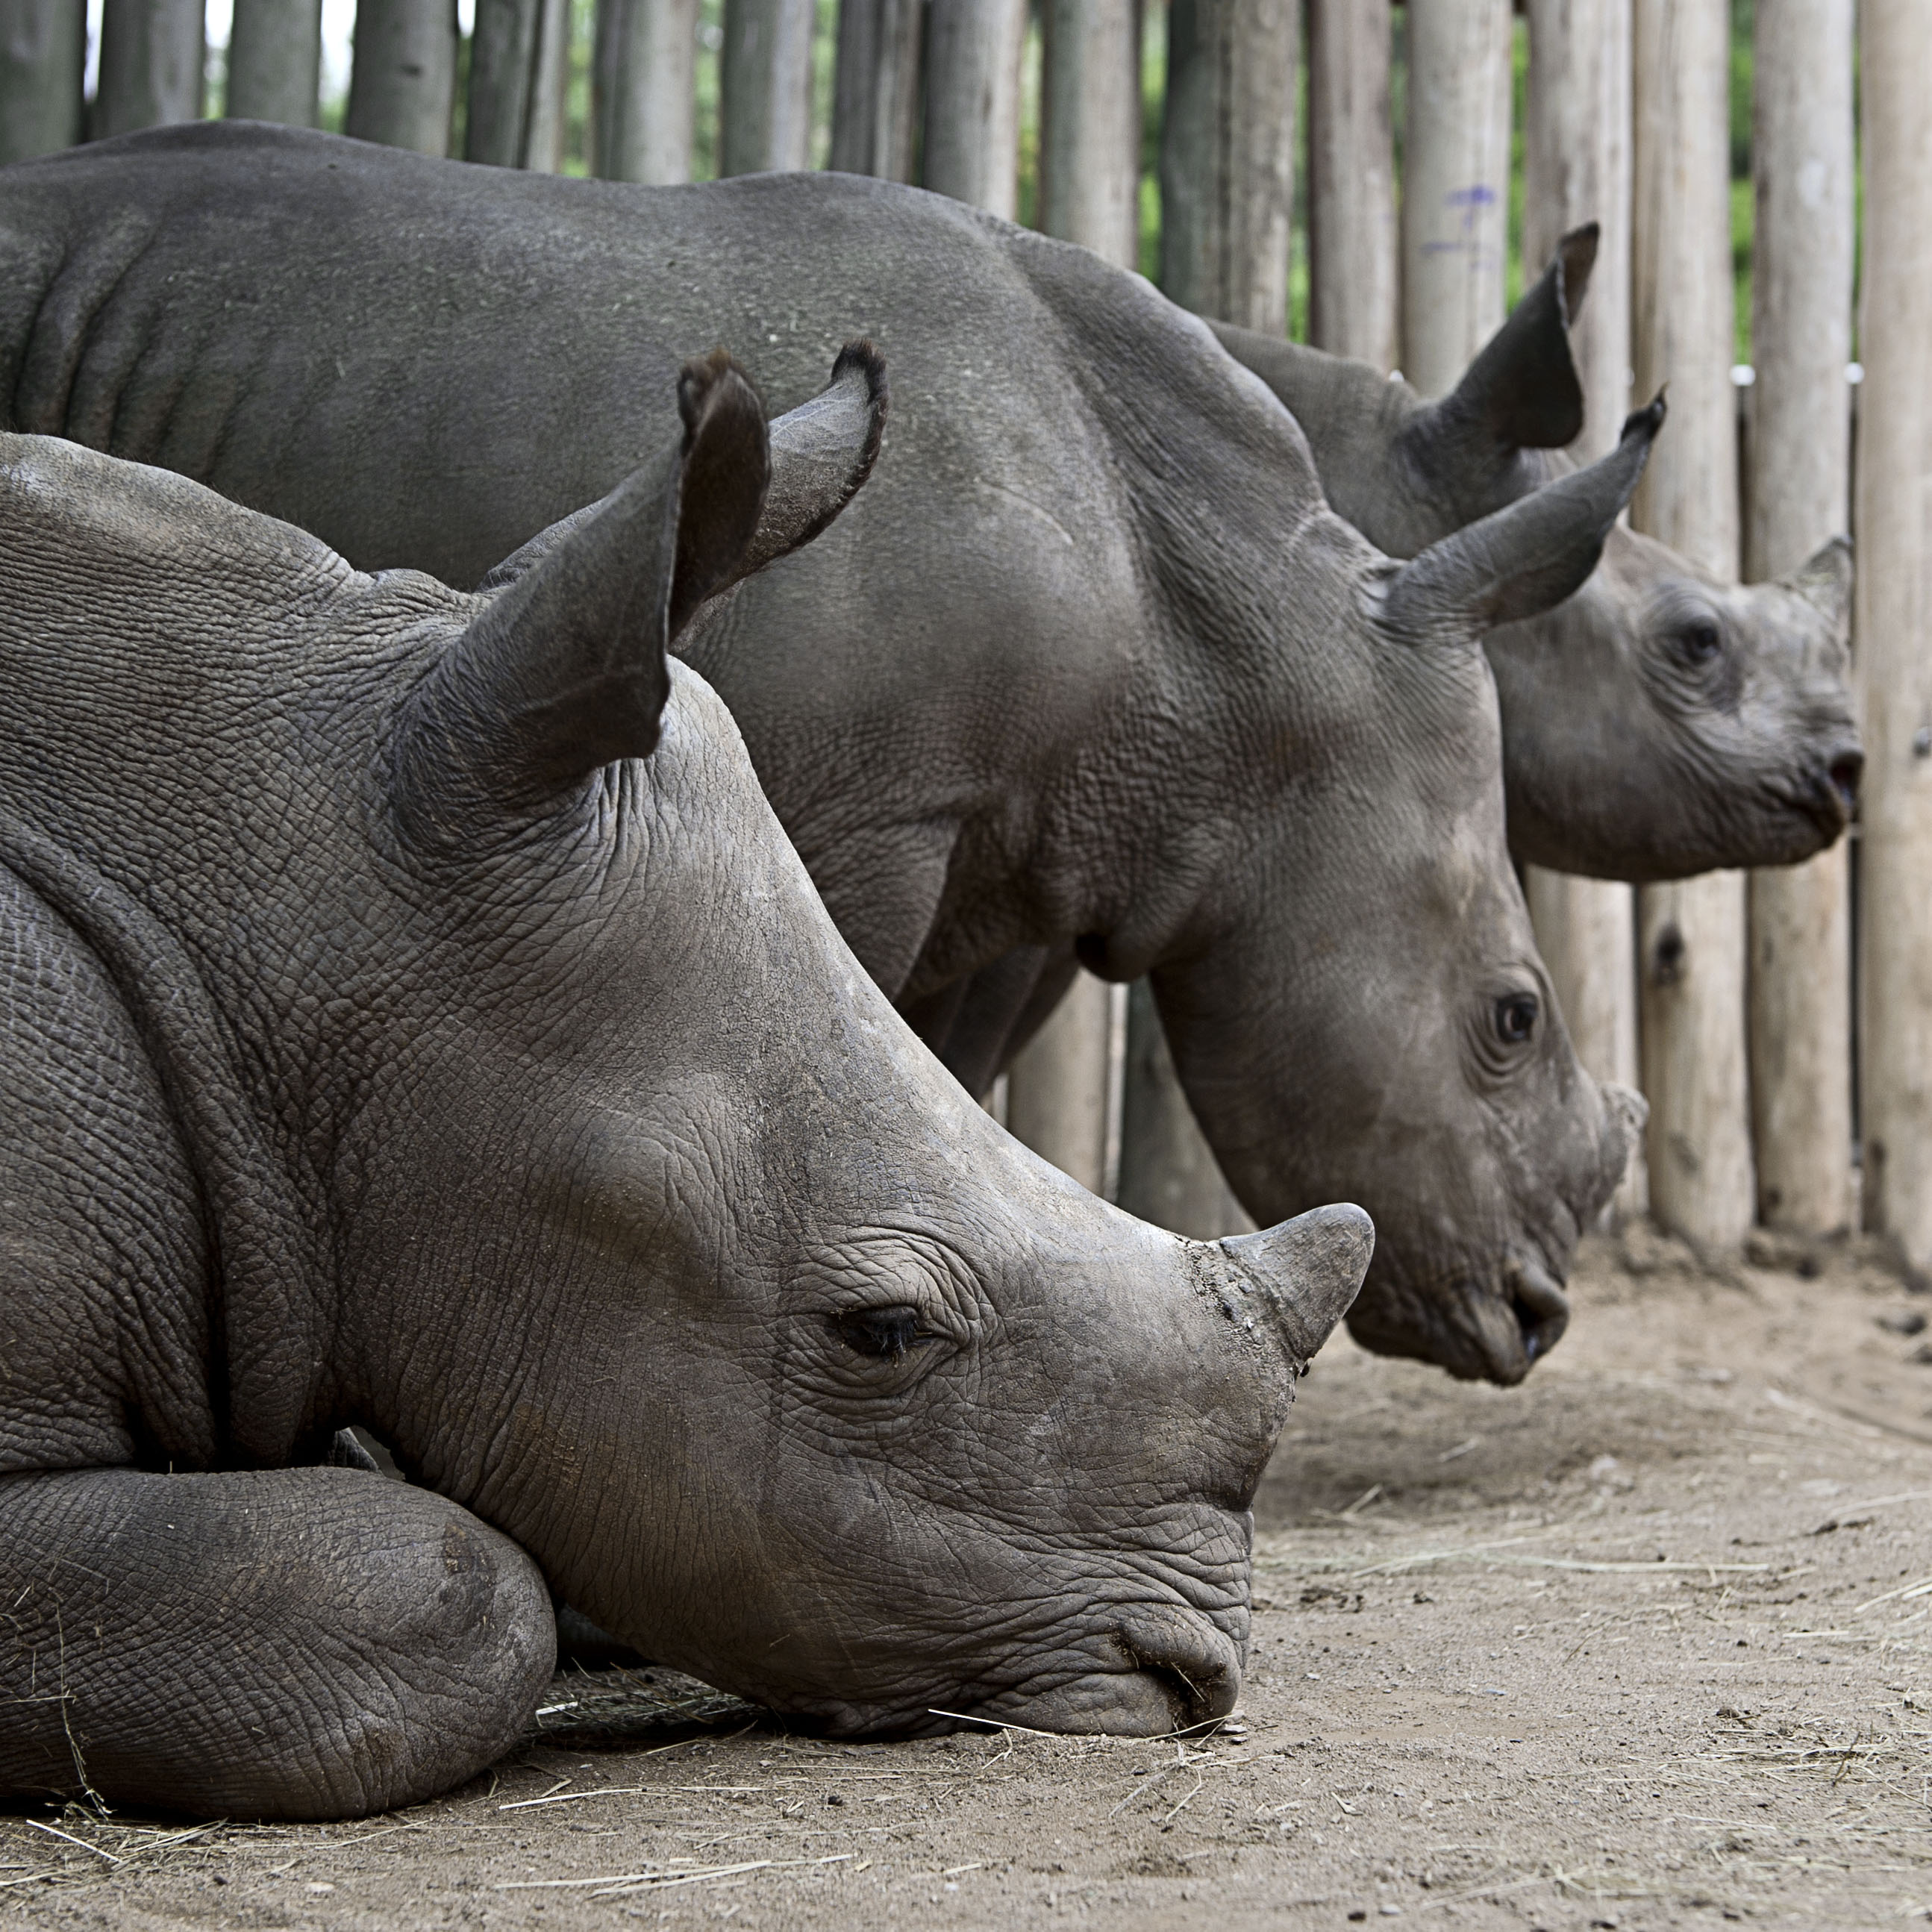 ENTRY DEADLINE EXTENDED TO OCTOBER 20  — The 2017 Annual International Rhino Art Competition! Photo